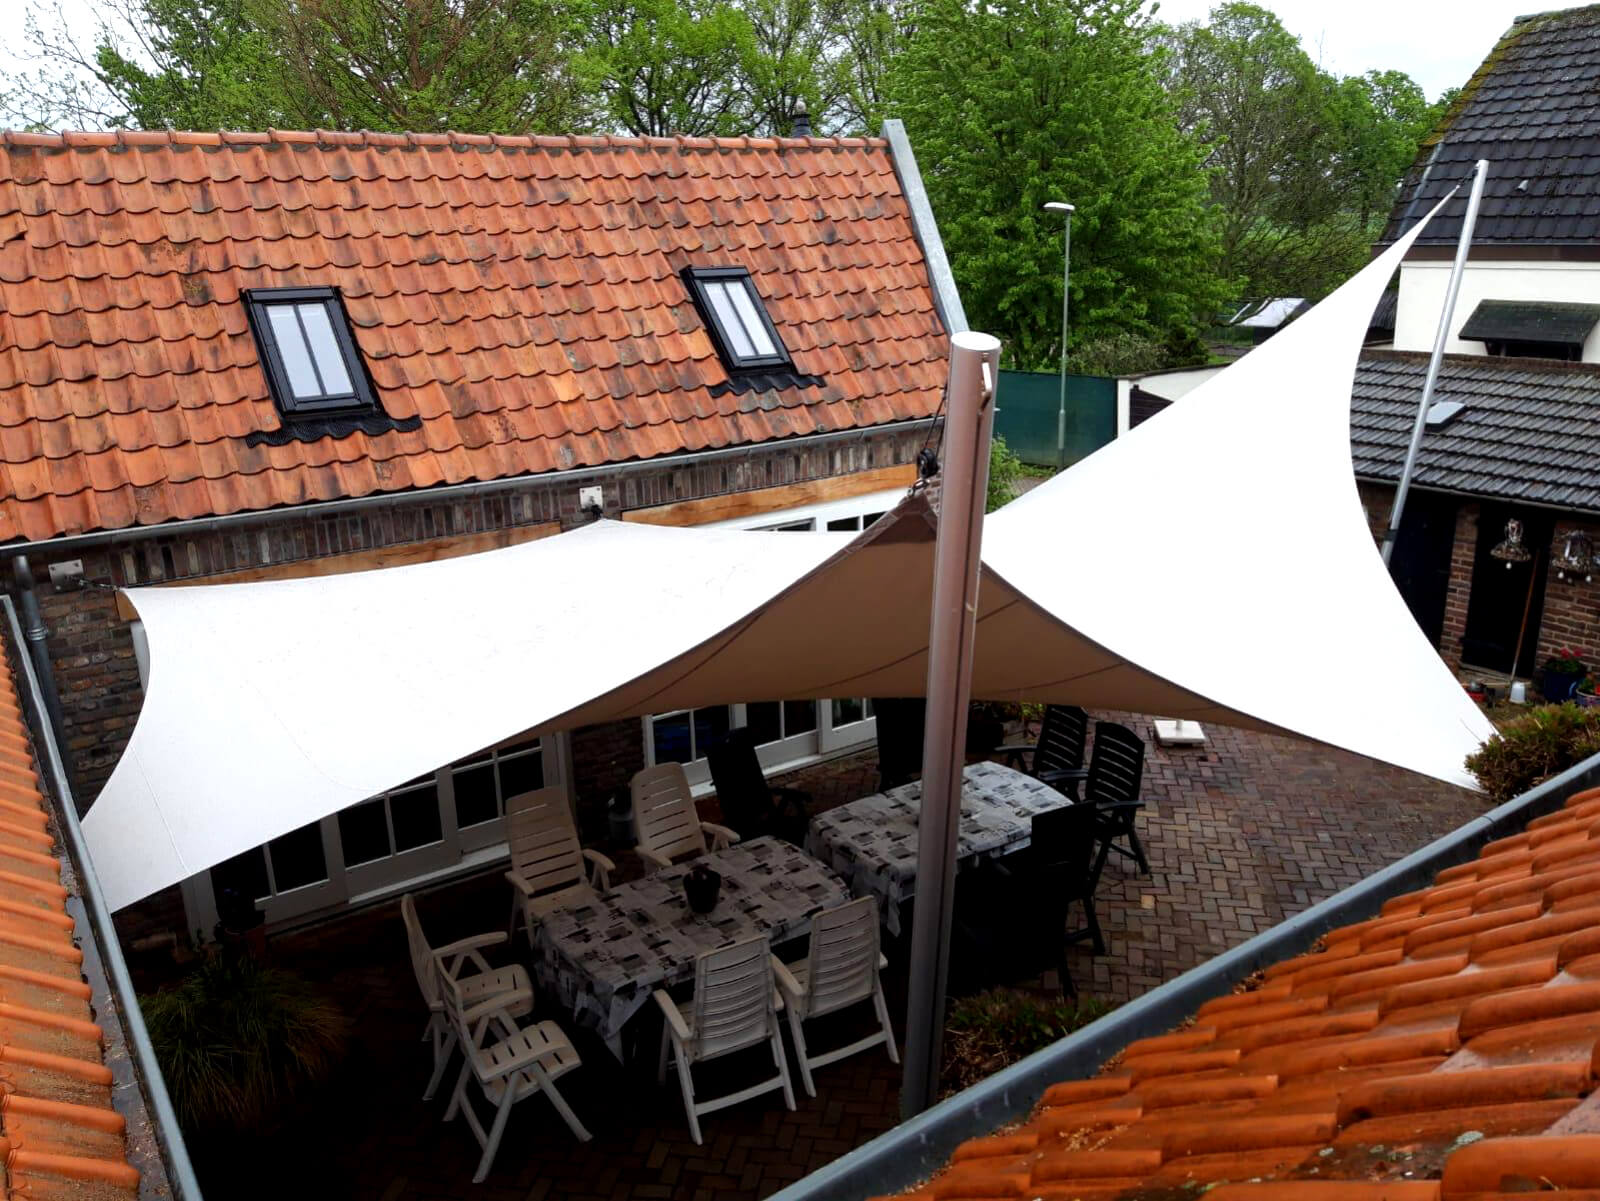 A stand-alone Texstyleroof is not just a shade sail but an actual roof